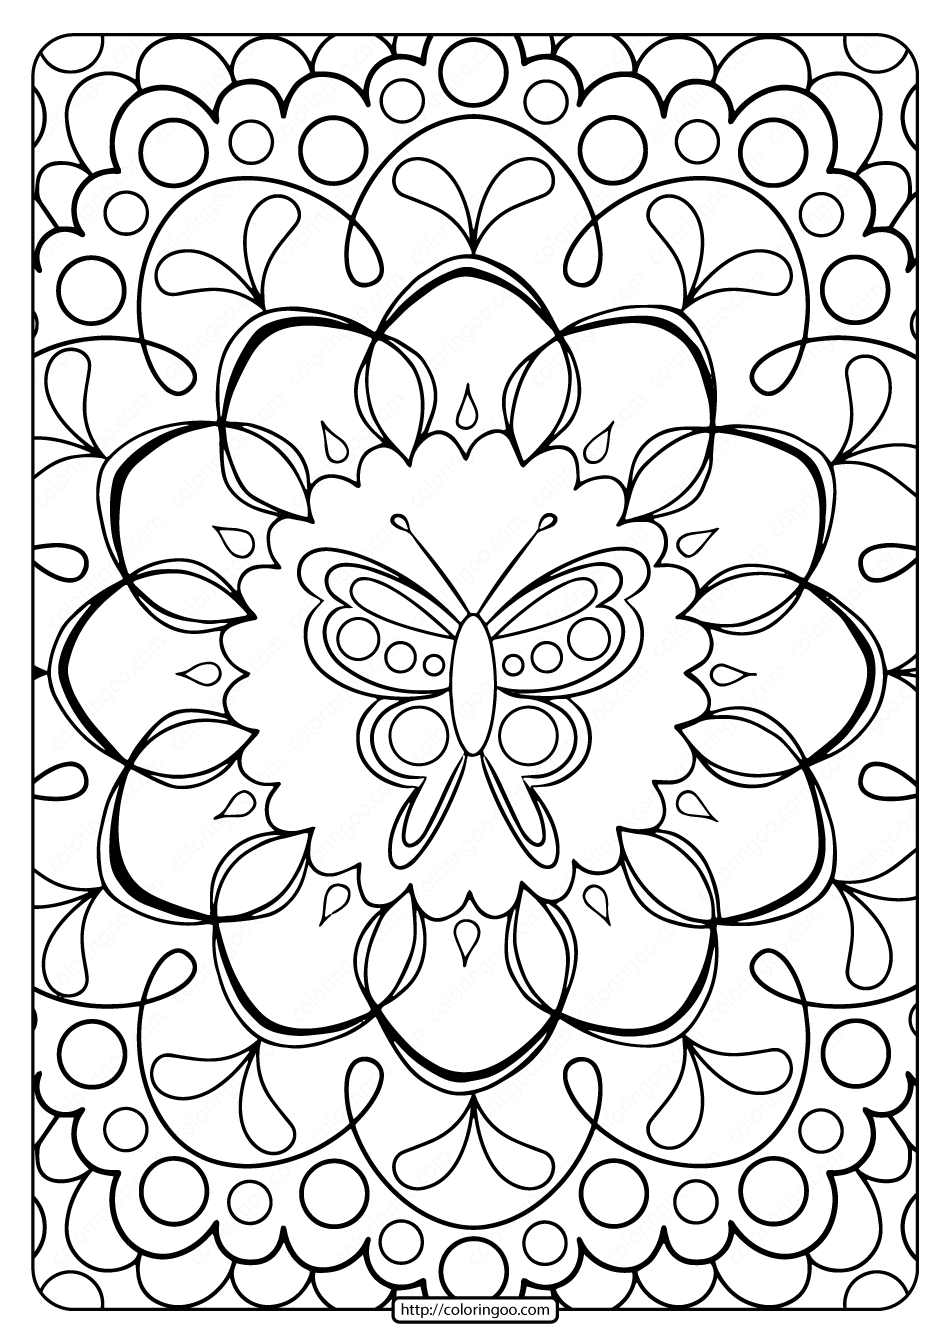 patterns to colour and print free printable leaves coloring pattern paper colour to patterns print and